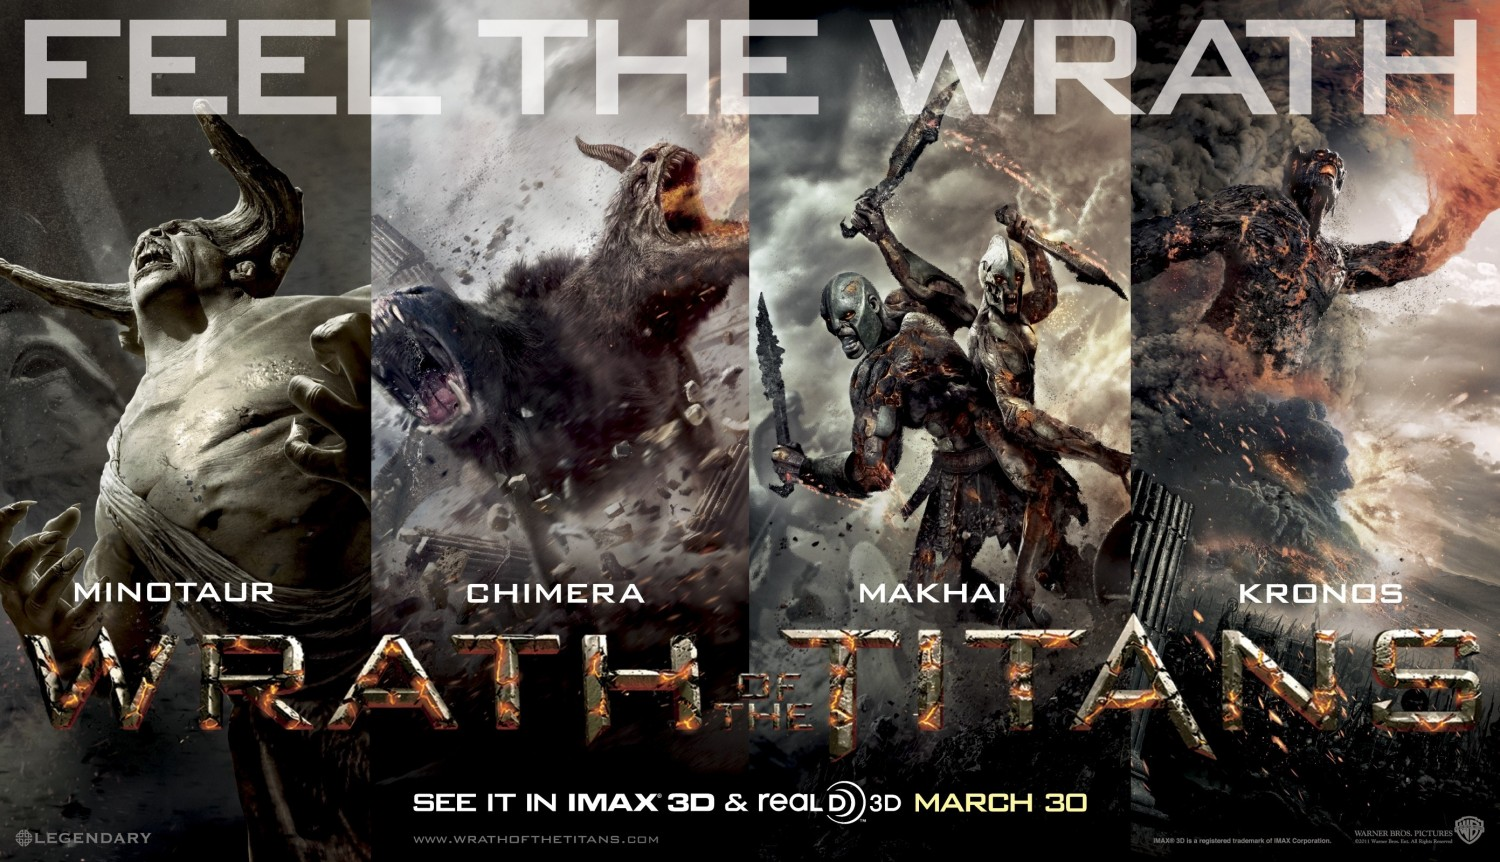 Wrath of the Titans Poster #2